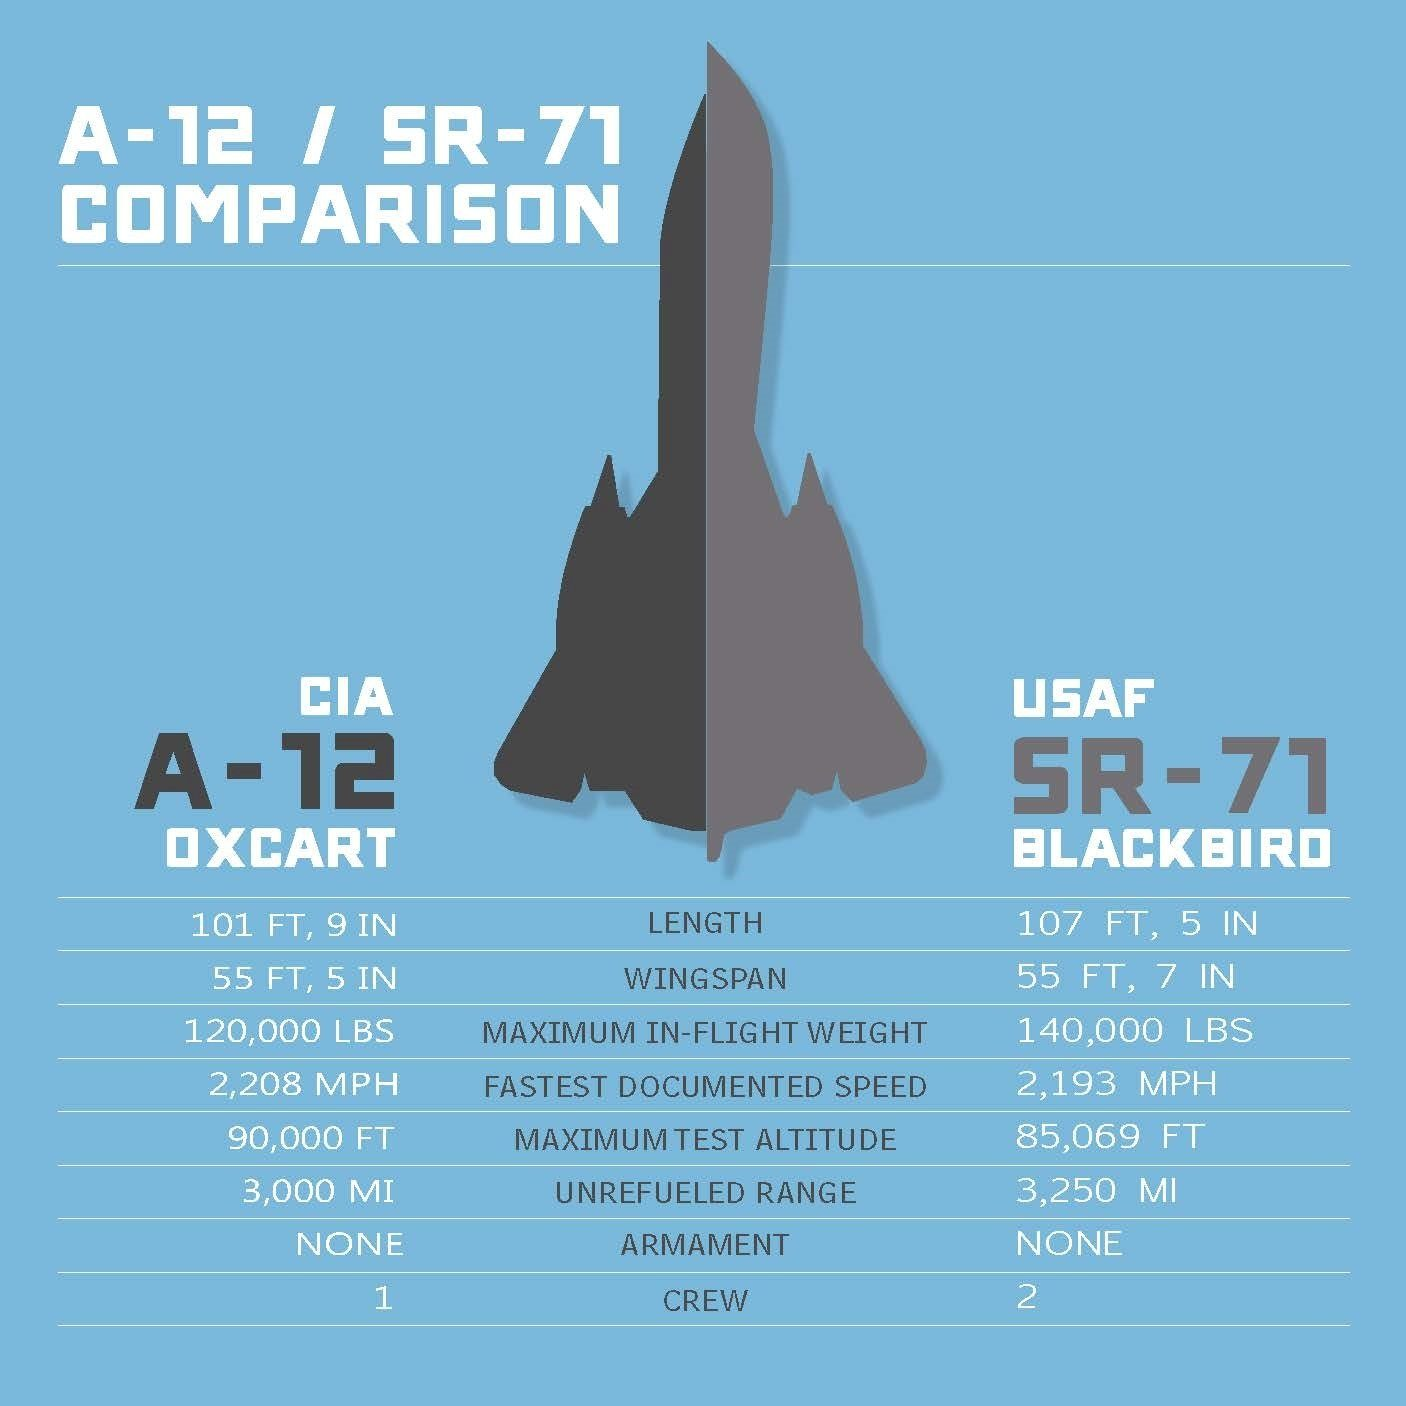 This Aircraft was Faster than the SR-71 (Look Closely it's not a Blackbird)